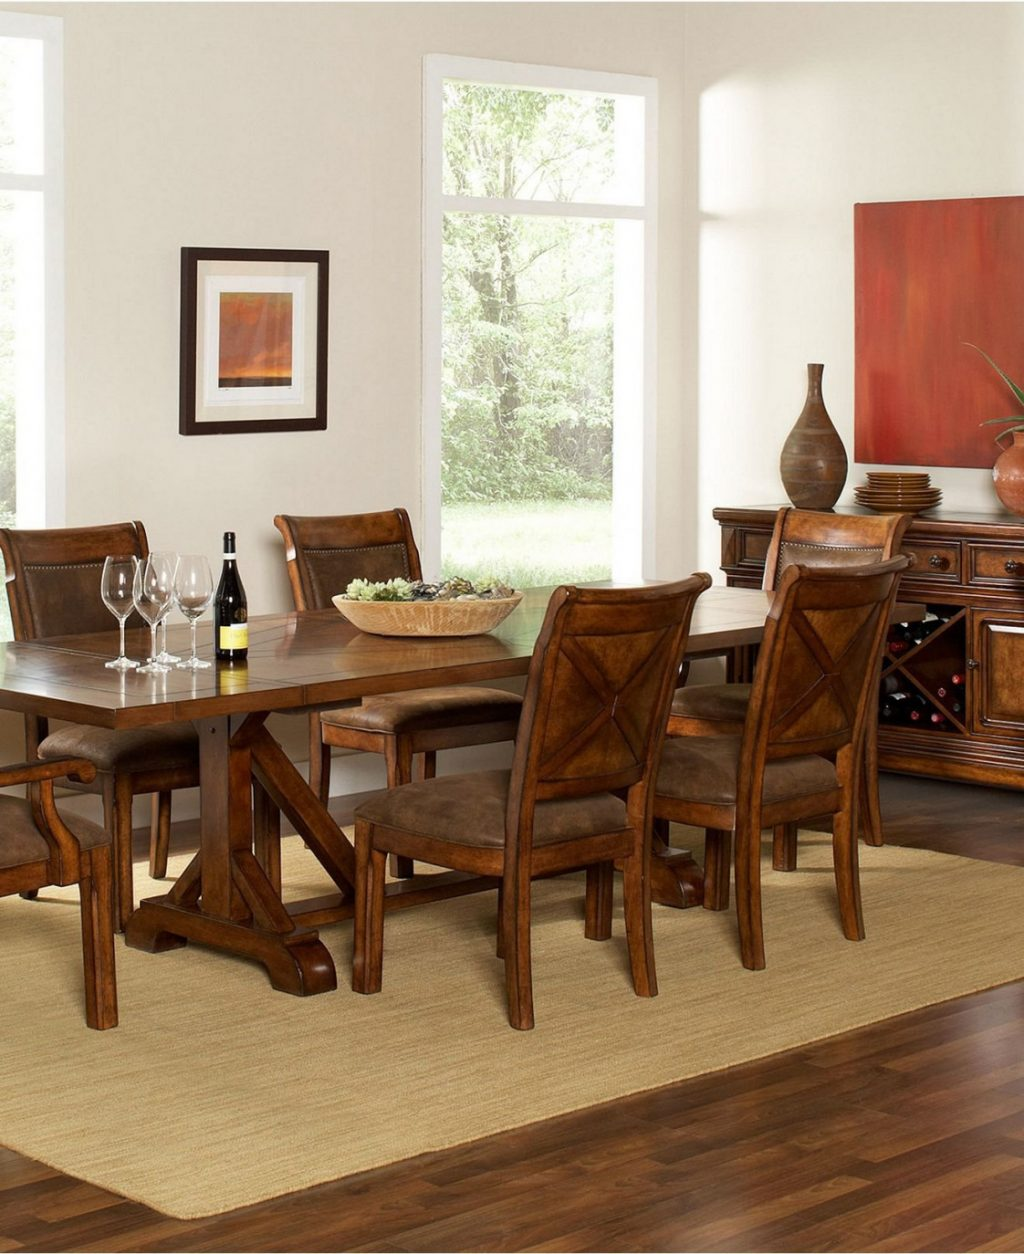 95 Macys Dining Room Table Sets Marais Dining Room Furniture 7